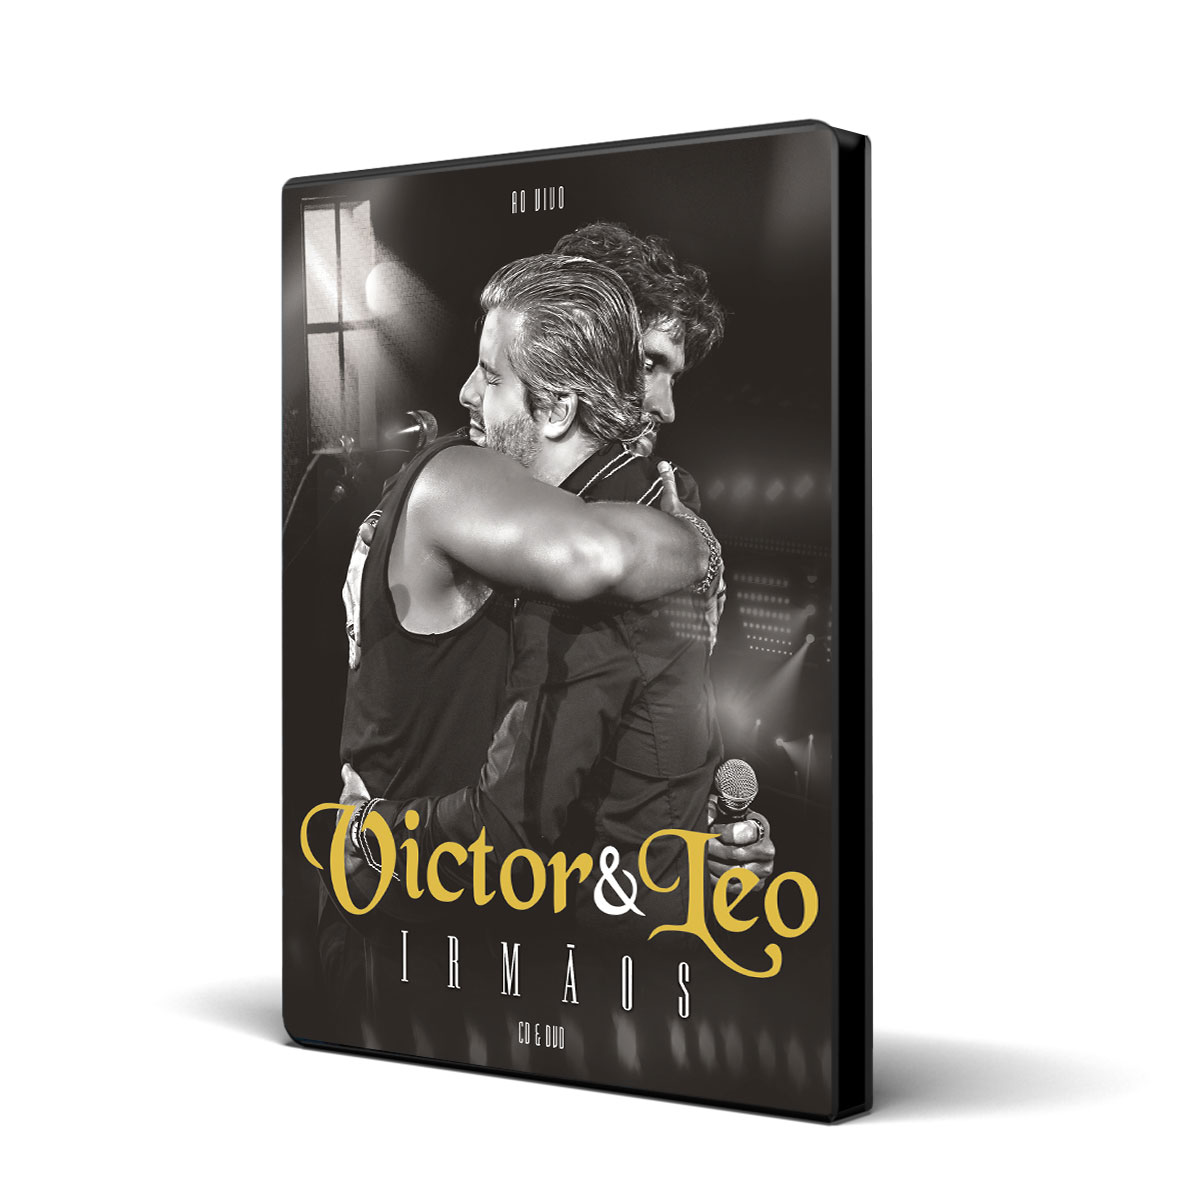 Kit CD+DVD Victor e Leo Irm�os